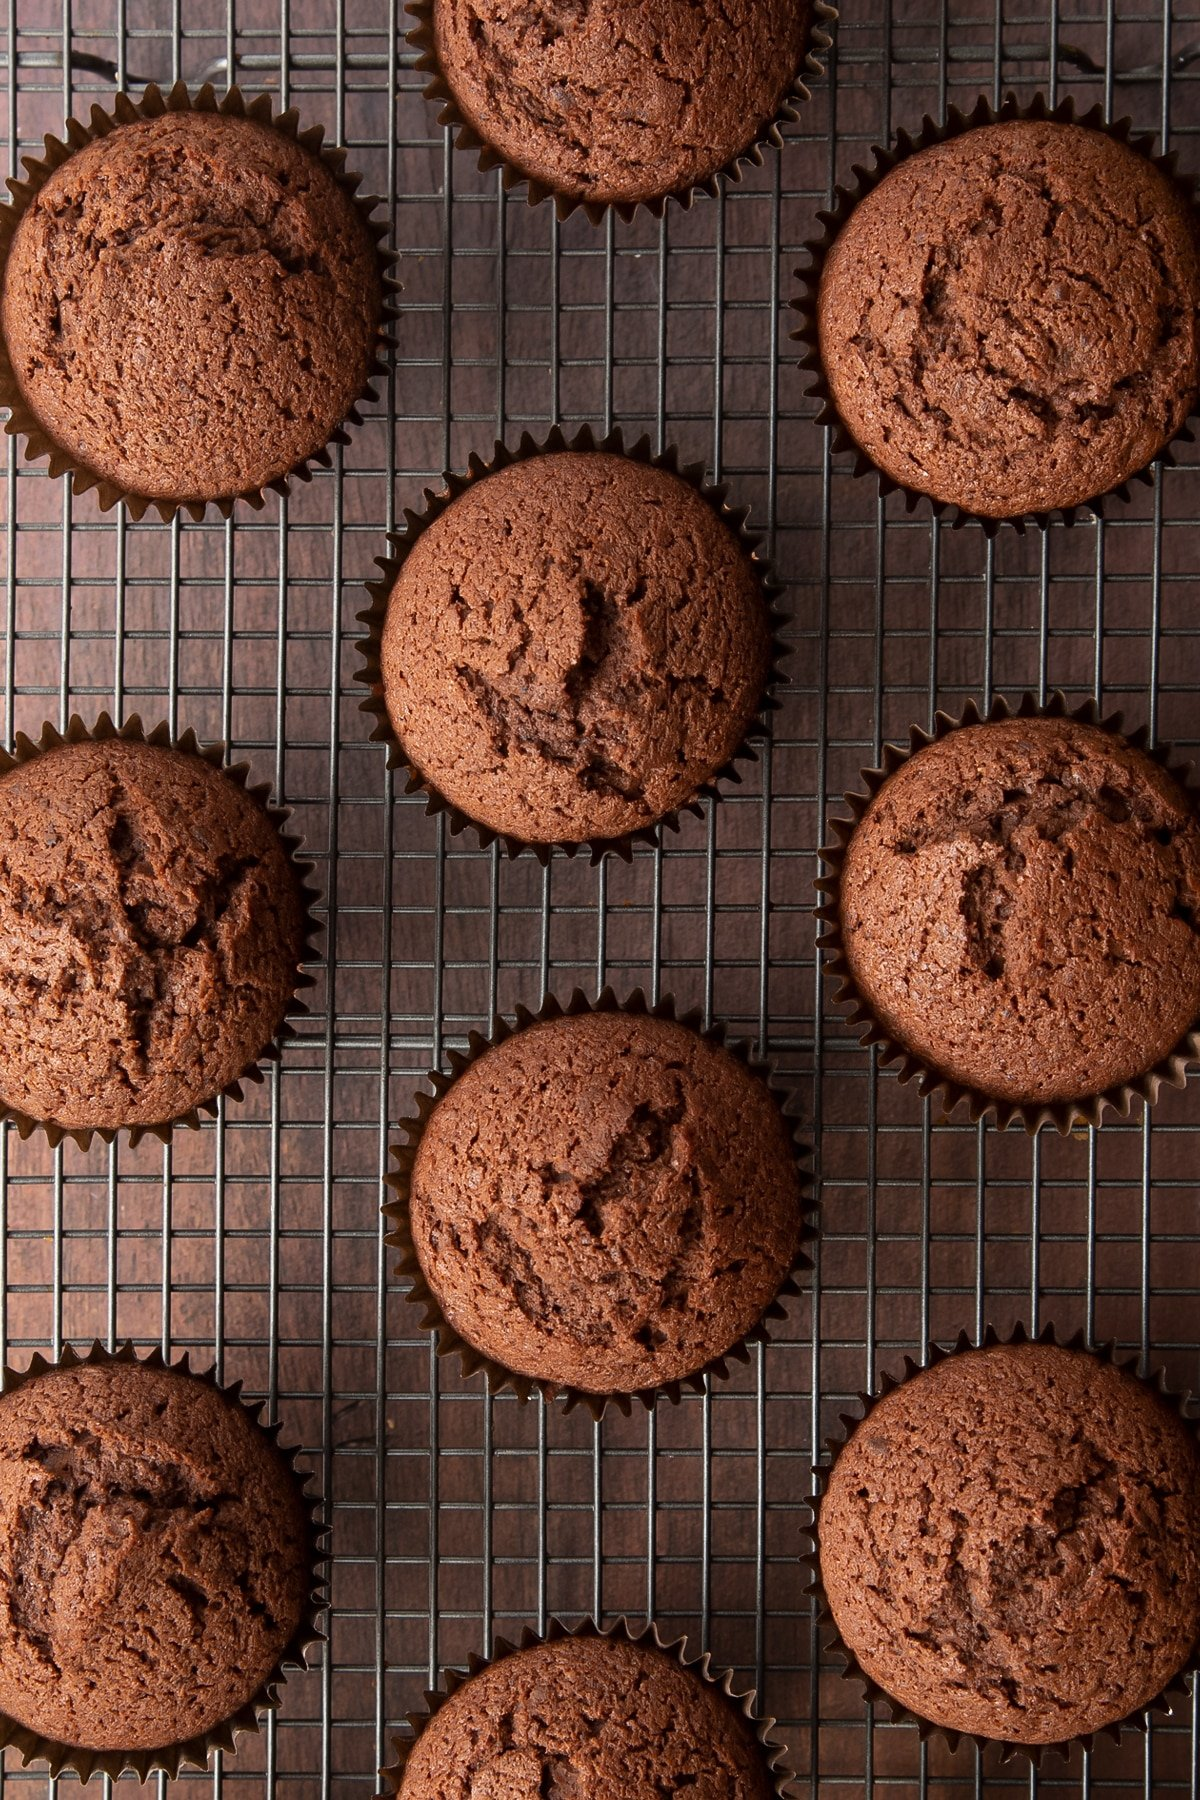 Baileys chocolate cupcakes. Shown from above on a wire cooling rack.